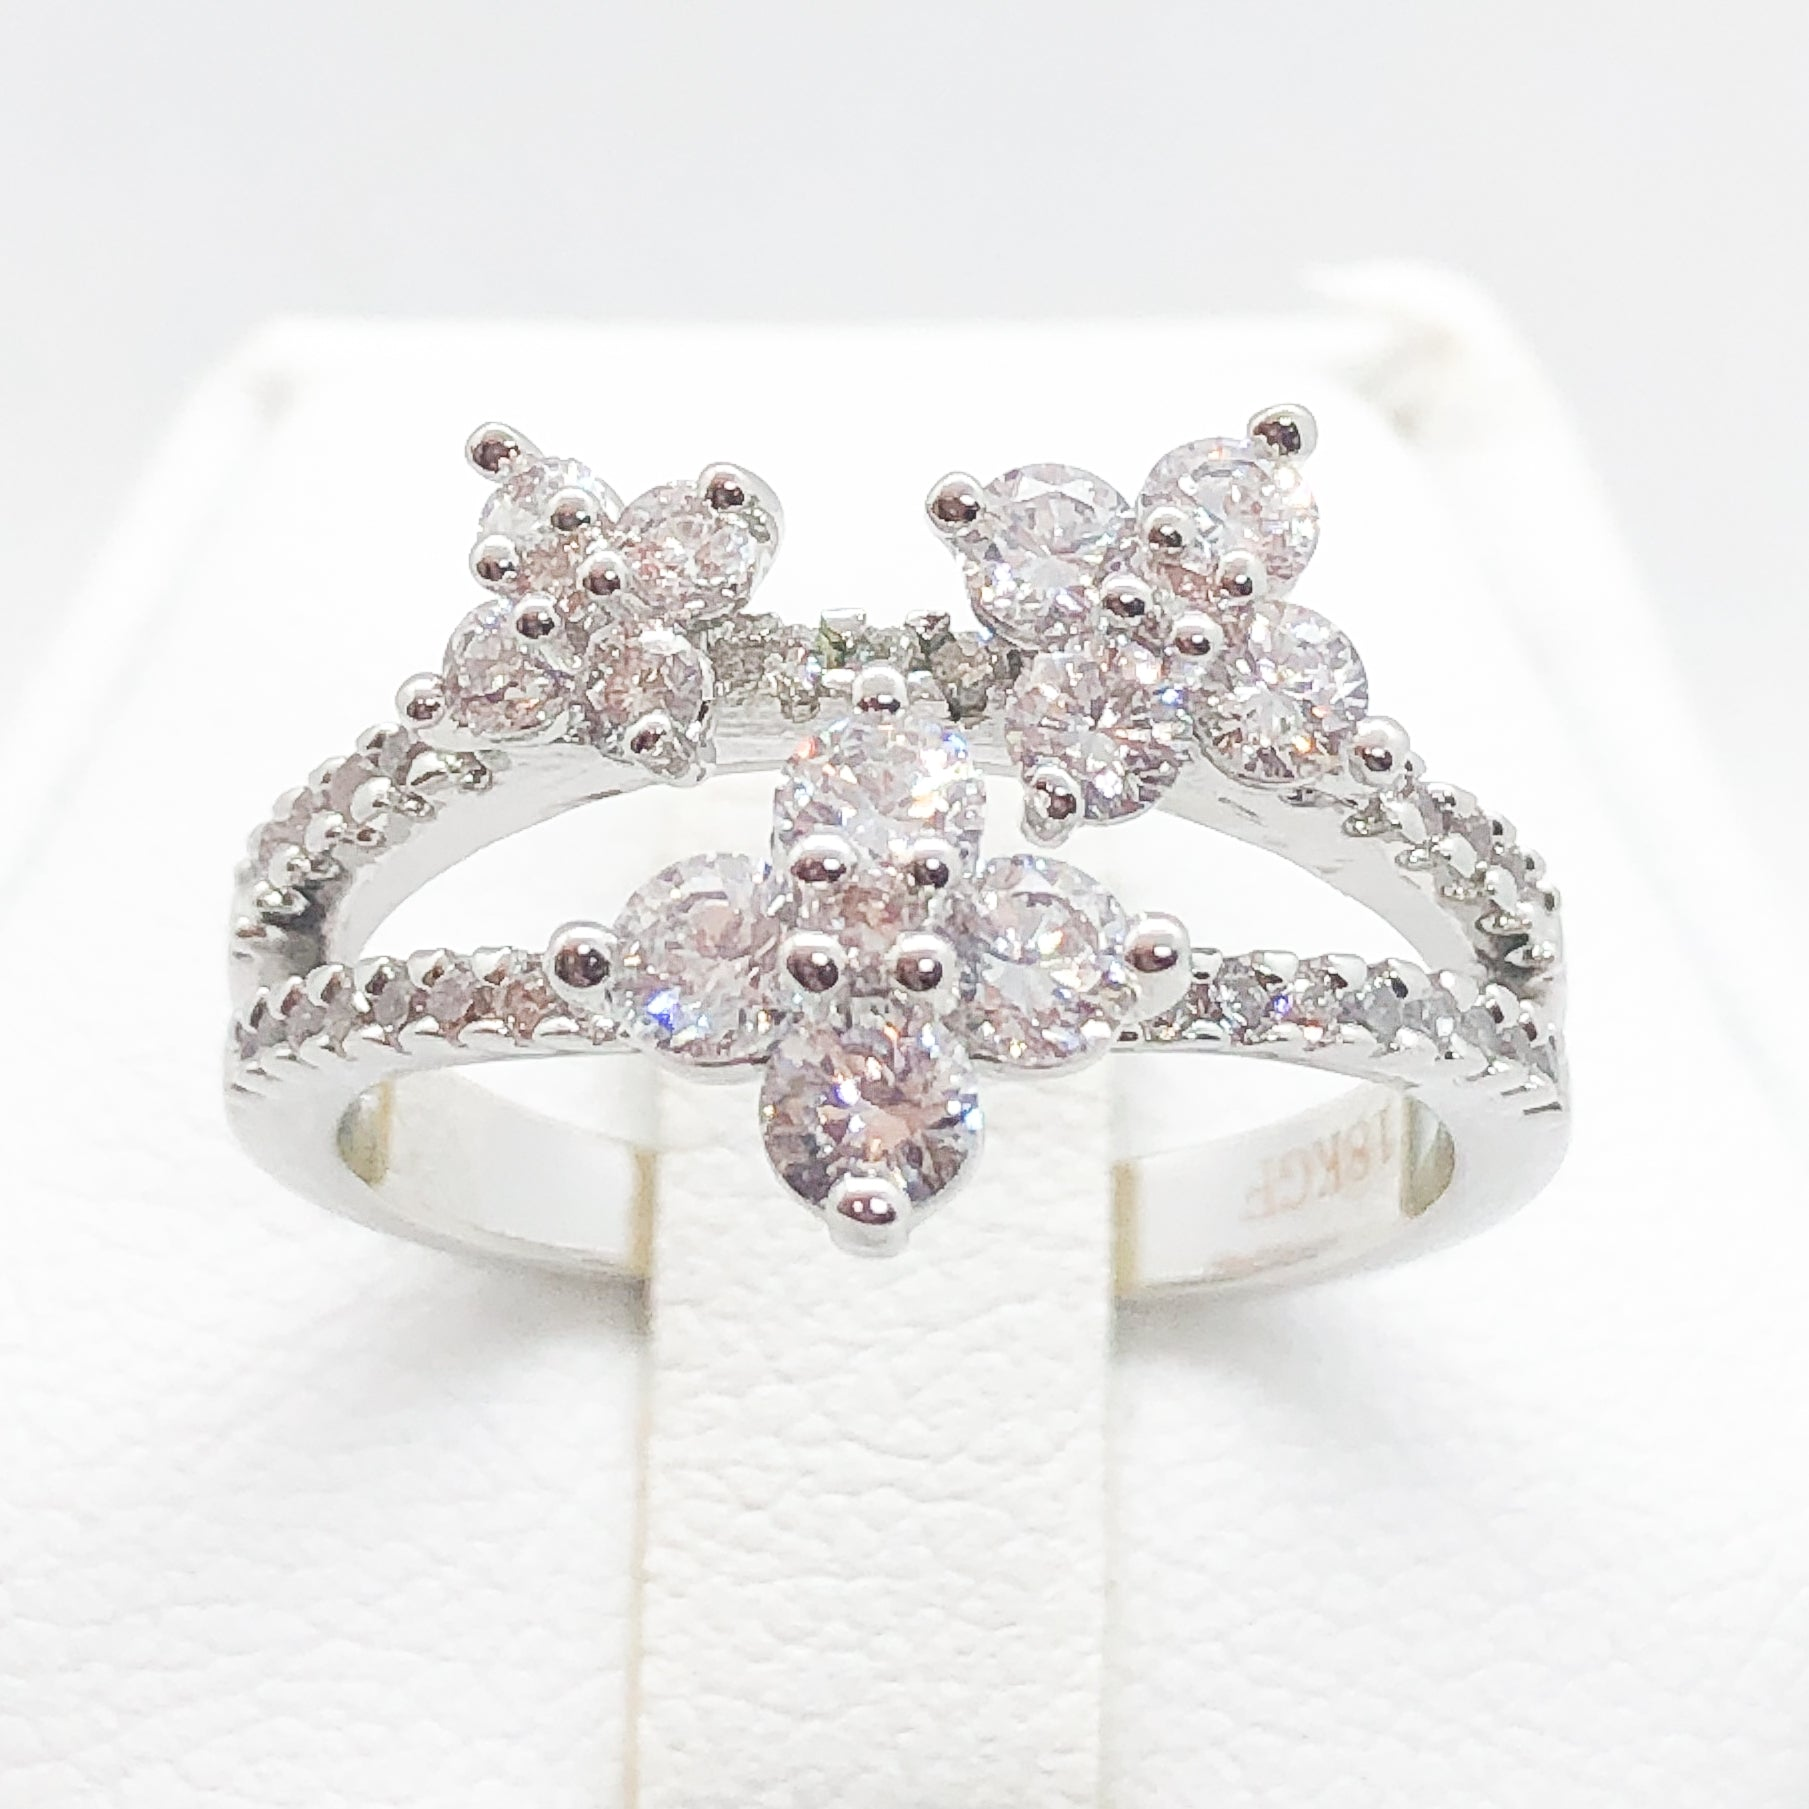 ID:R7217 Women 18K White Gold GF Fashion Jewelry Marvelous Floral Design Cluster Cocktail Ring